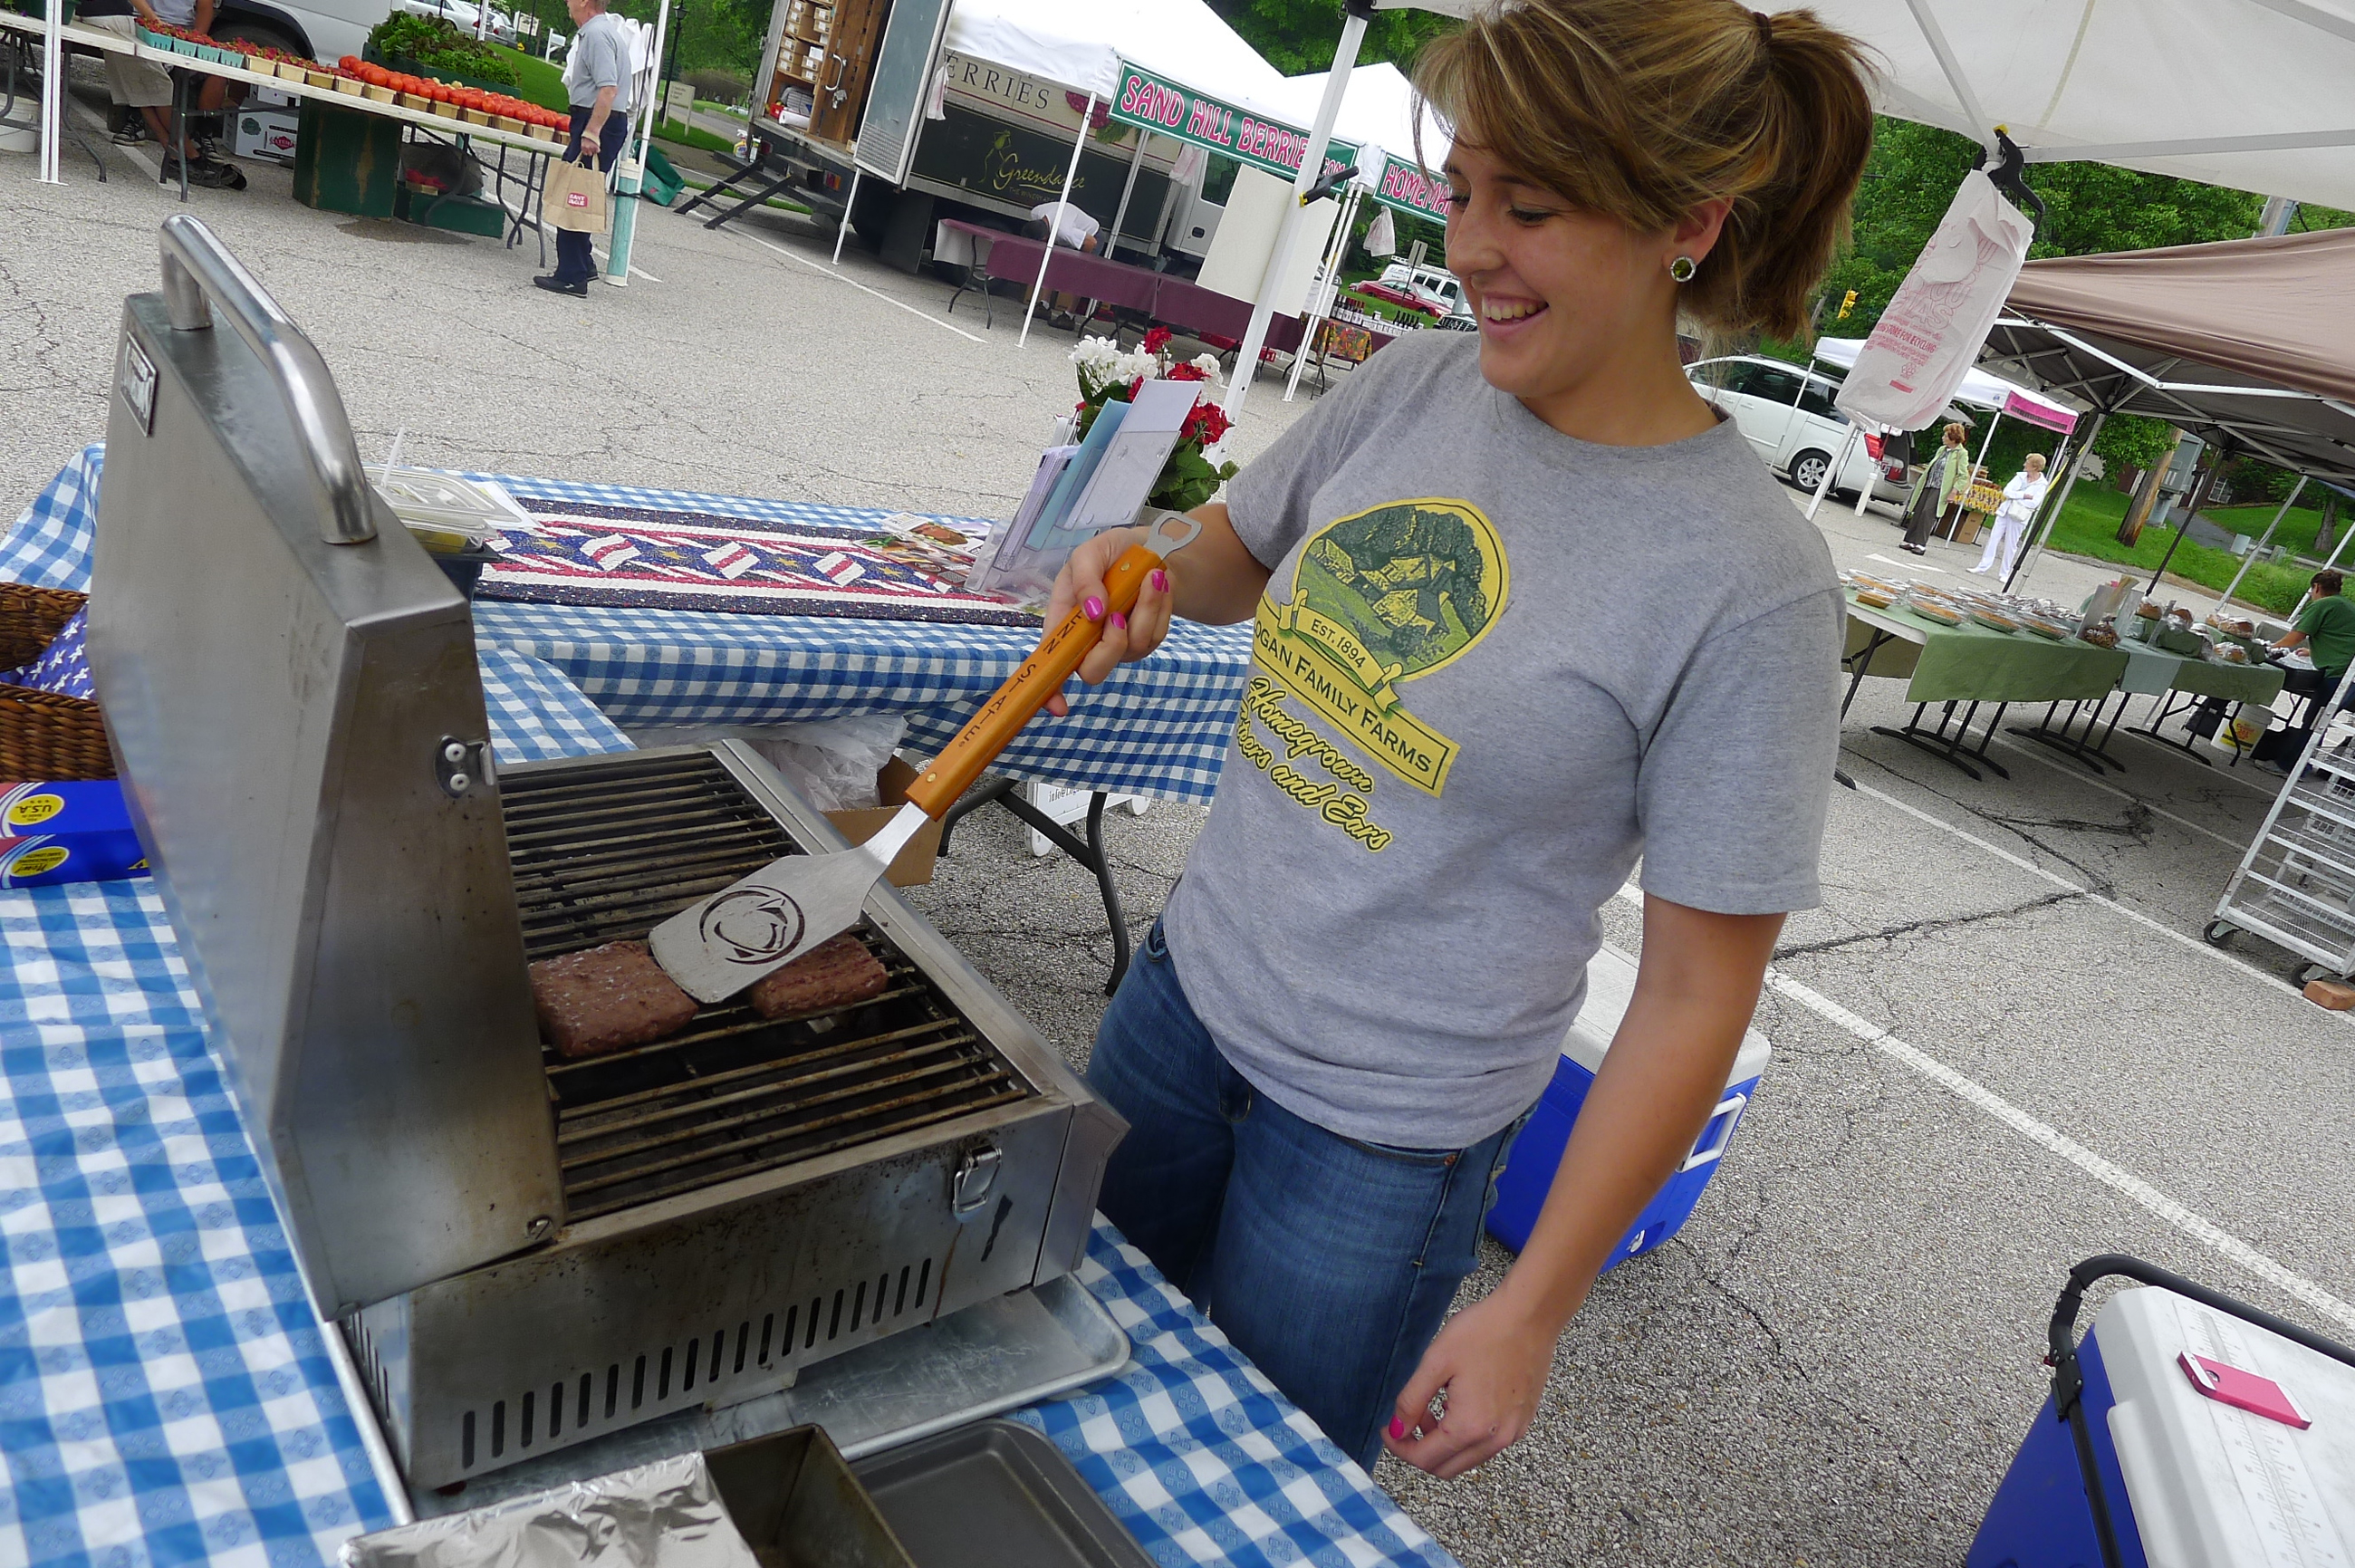 P1230787-8 Logan Farms worker Brittany Coles starts cooking burgers early, in part because she wants to eat one herself at opening day at the Upper St. Clair Farmers Market on May 29.